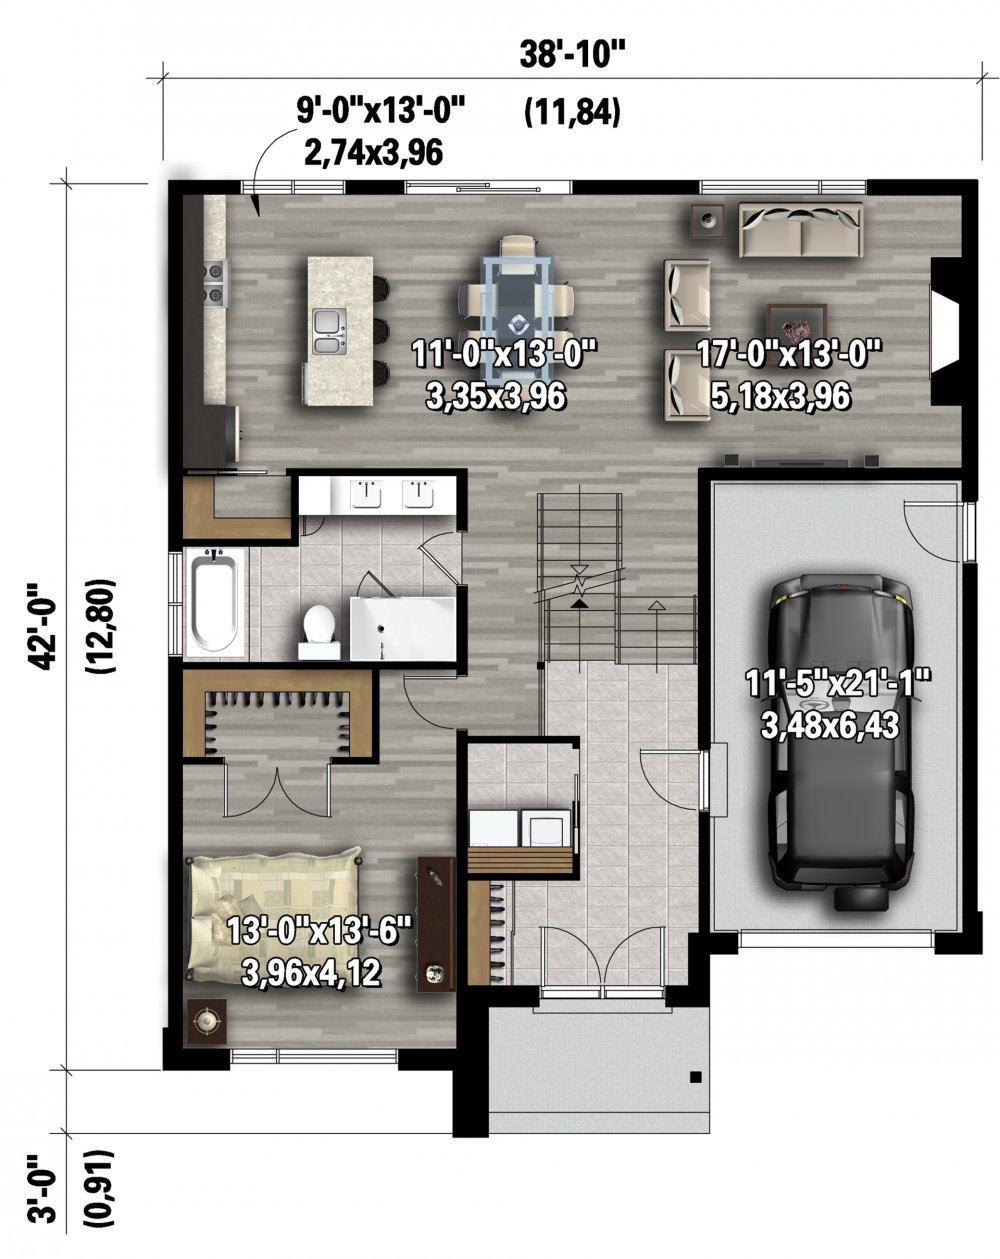 Plan Image Used When Printing Plan Maison Amenagement In 2018